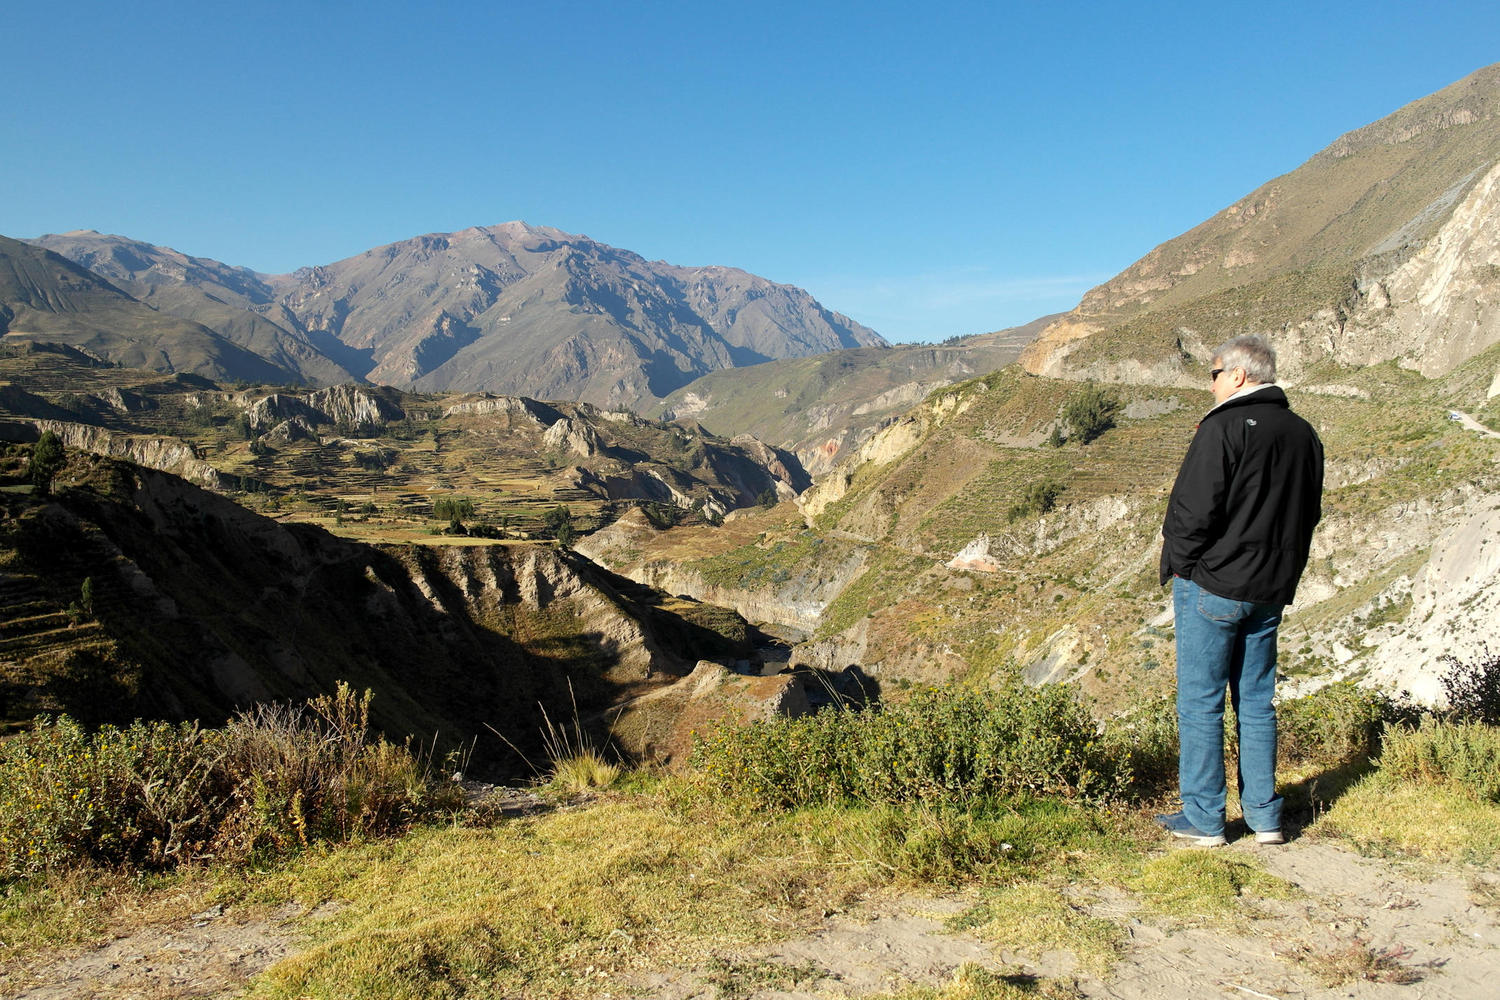 Looking out over the Colca Canyon, Peru